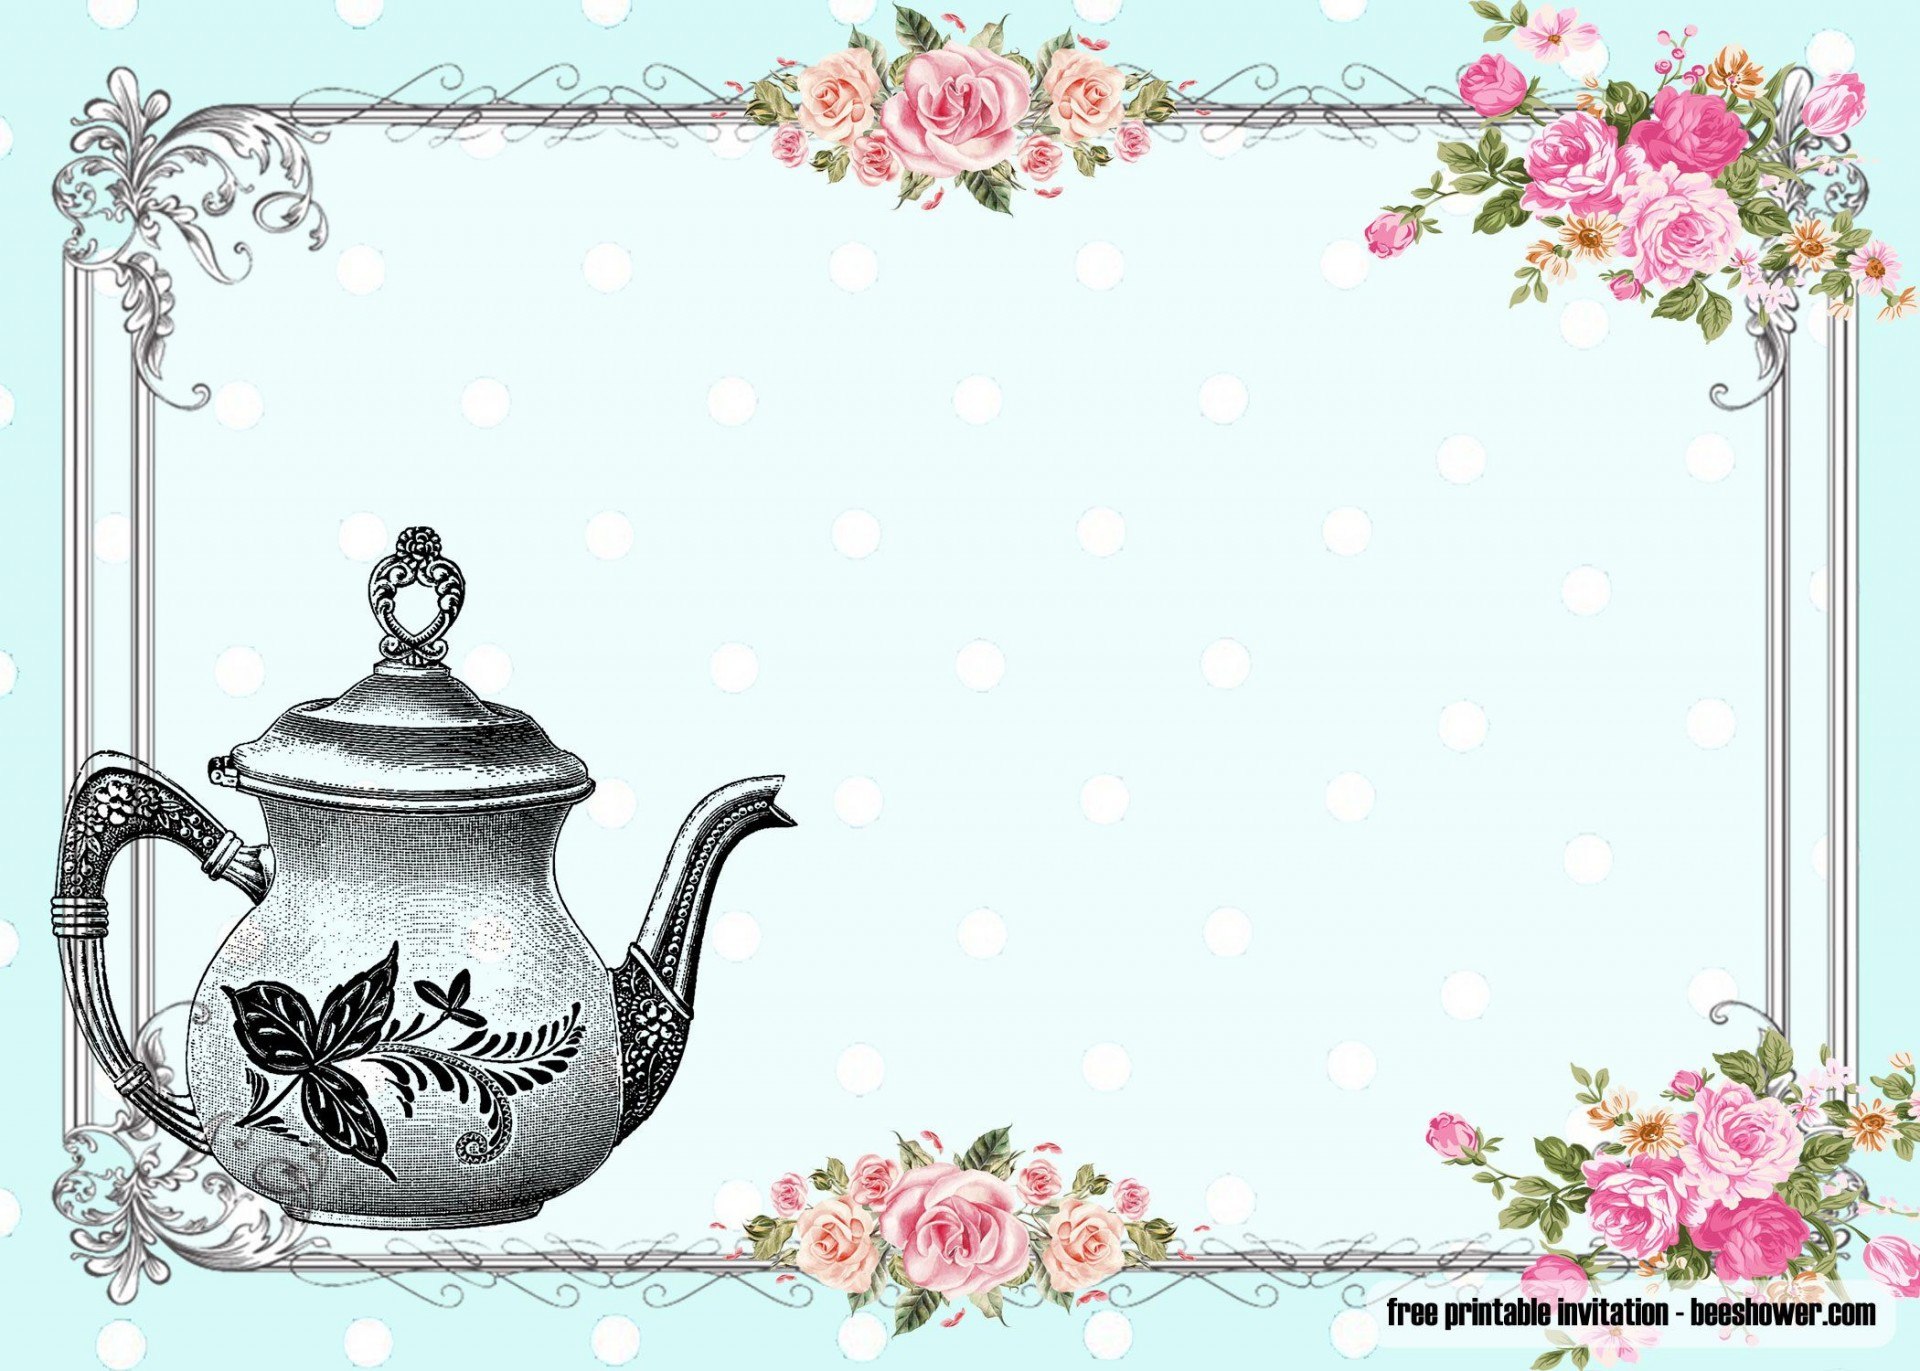 010 Awful Tea Party Invitation Template Idea  Card Victorian Wording For Bridal Shower1920